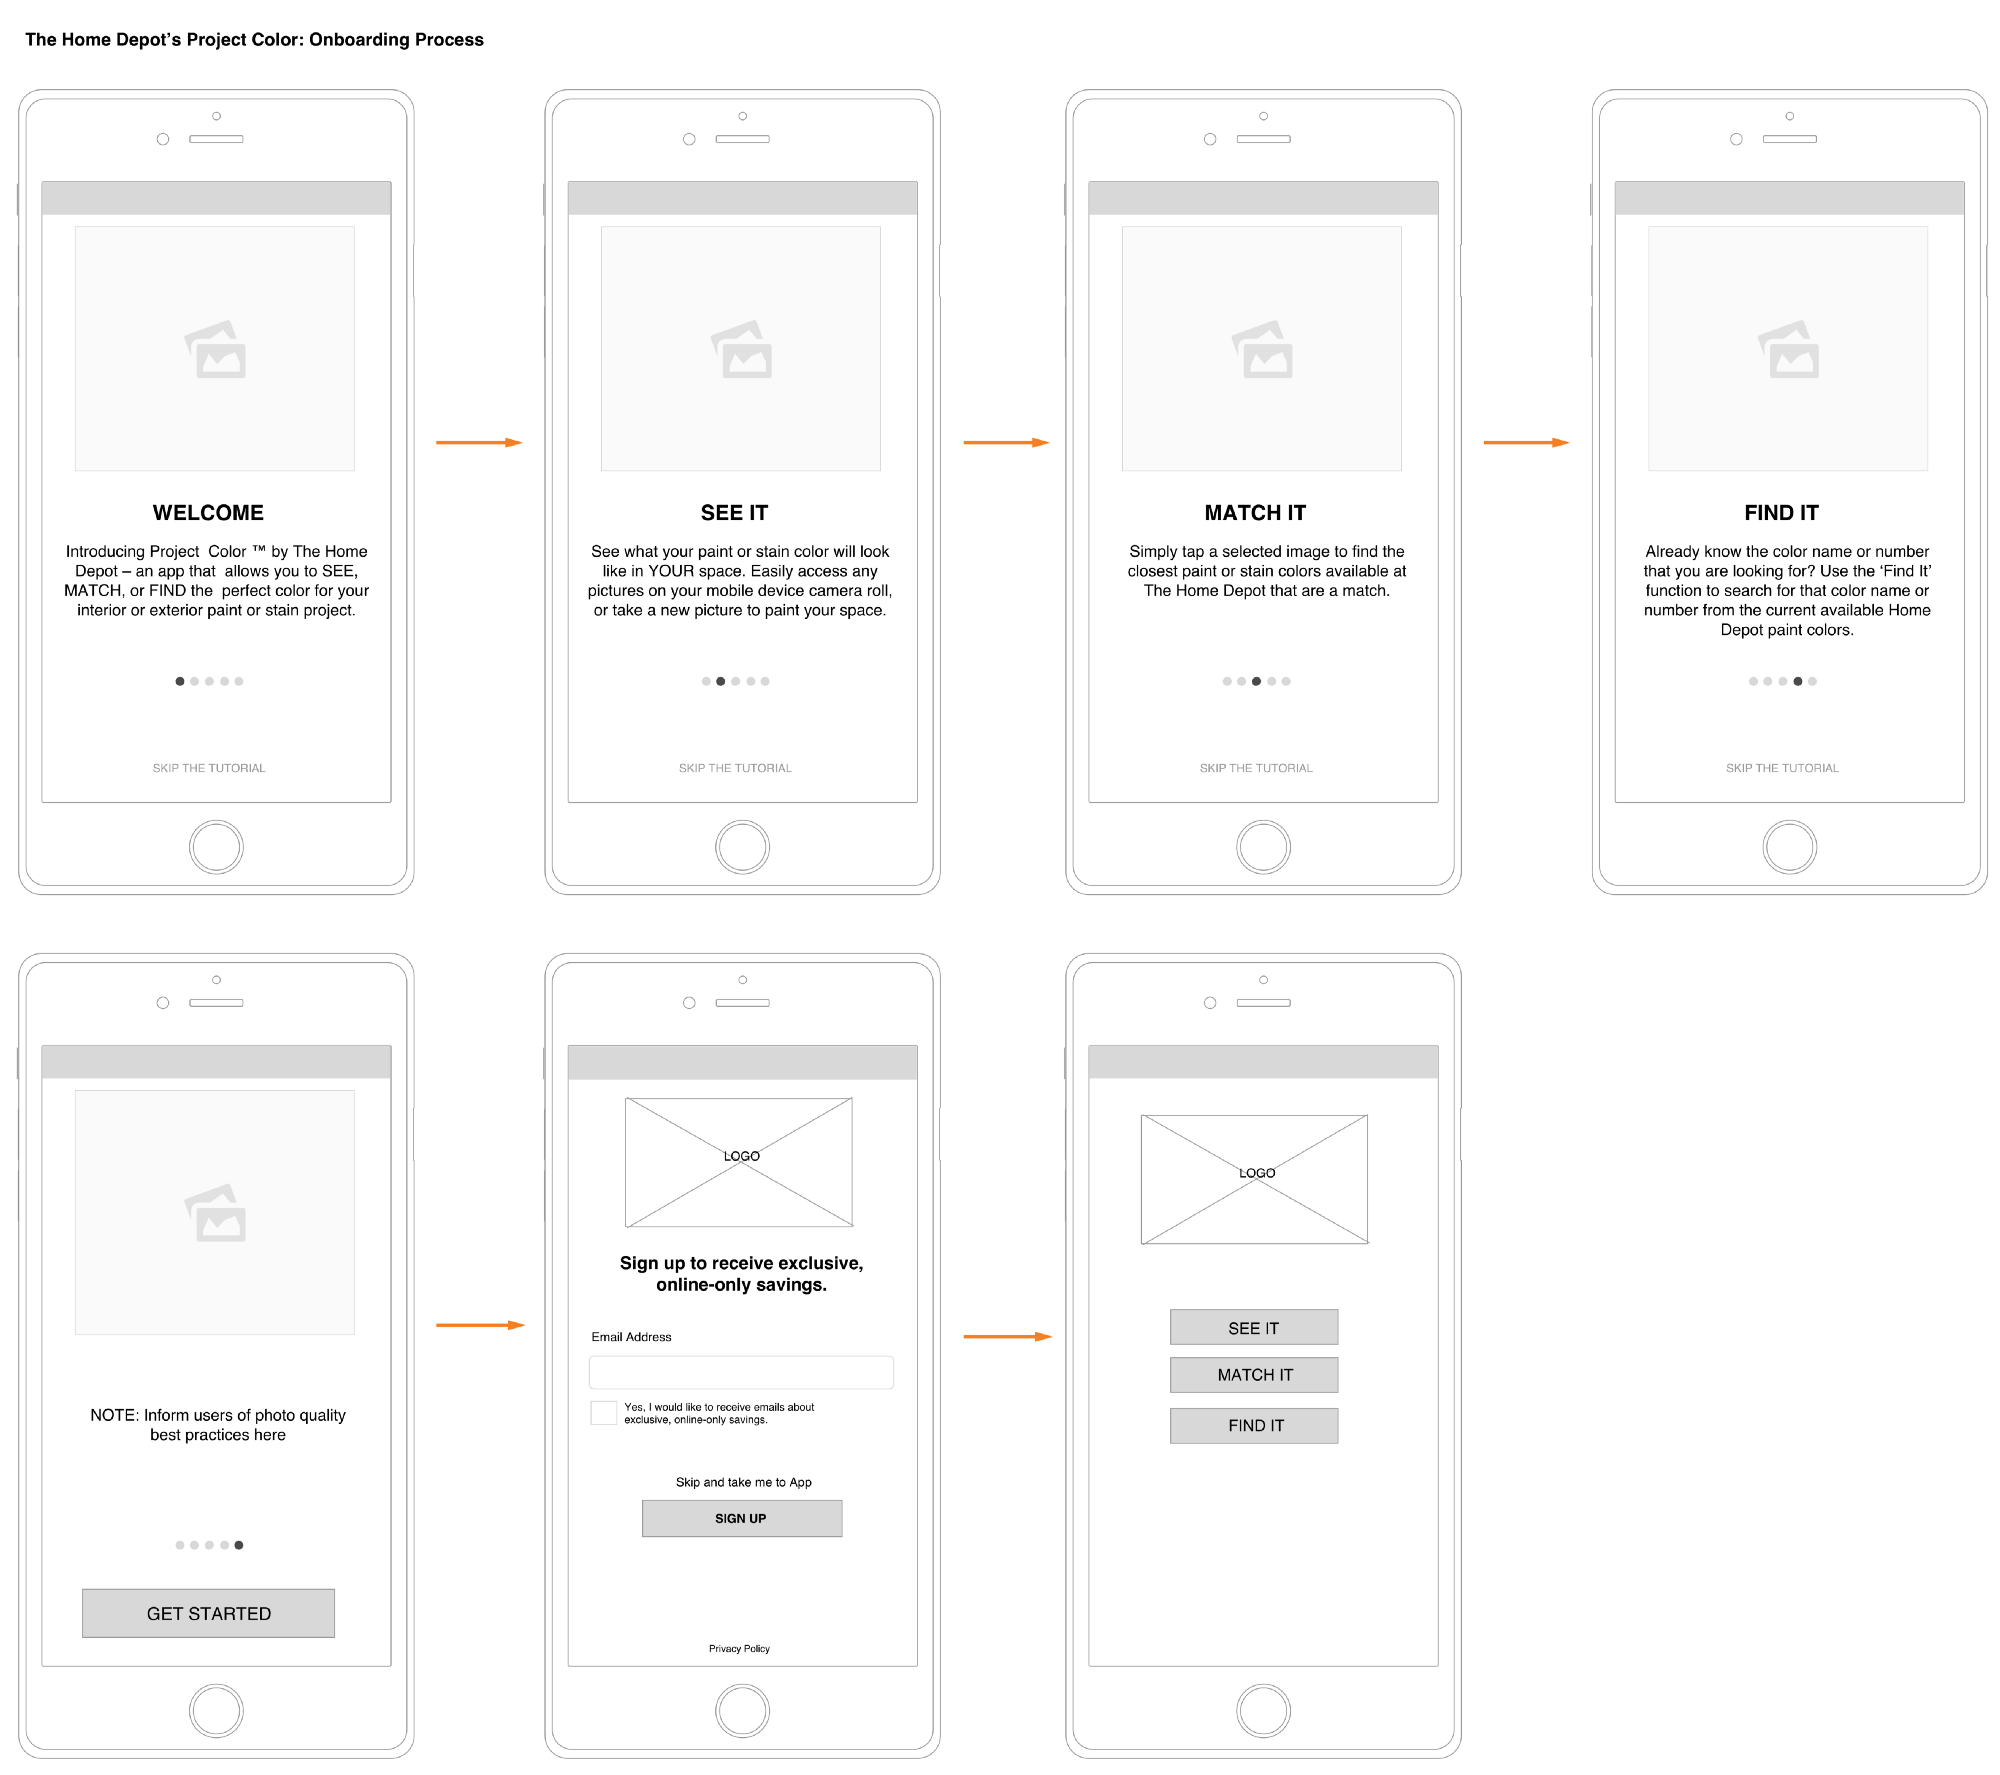 Usability Testing on Home Depot\'s App: Project Color